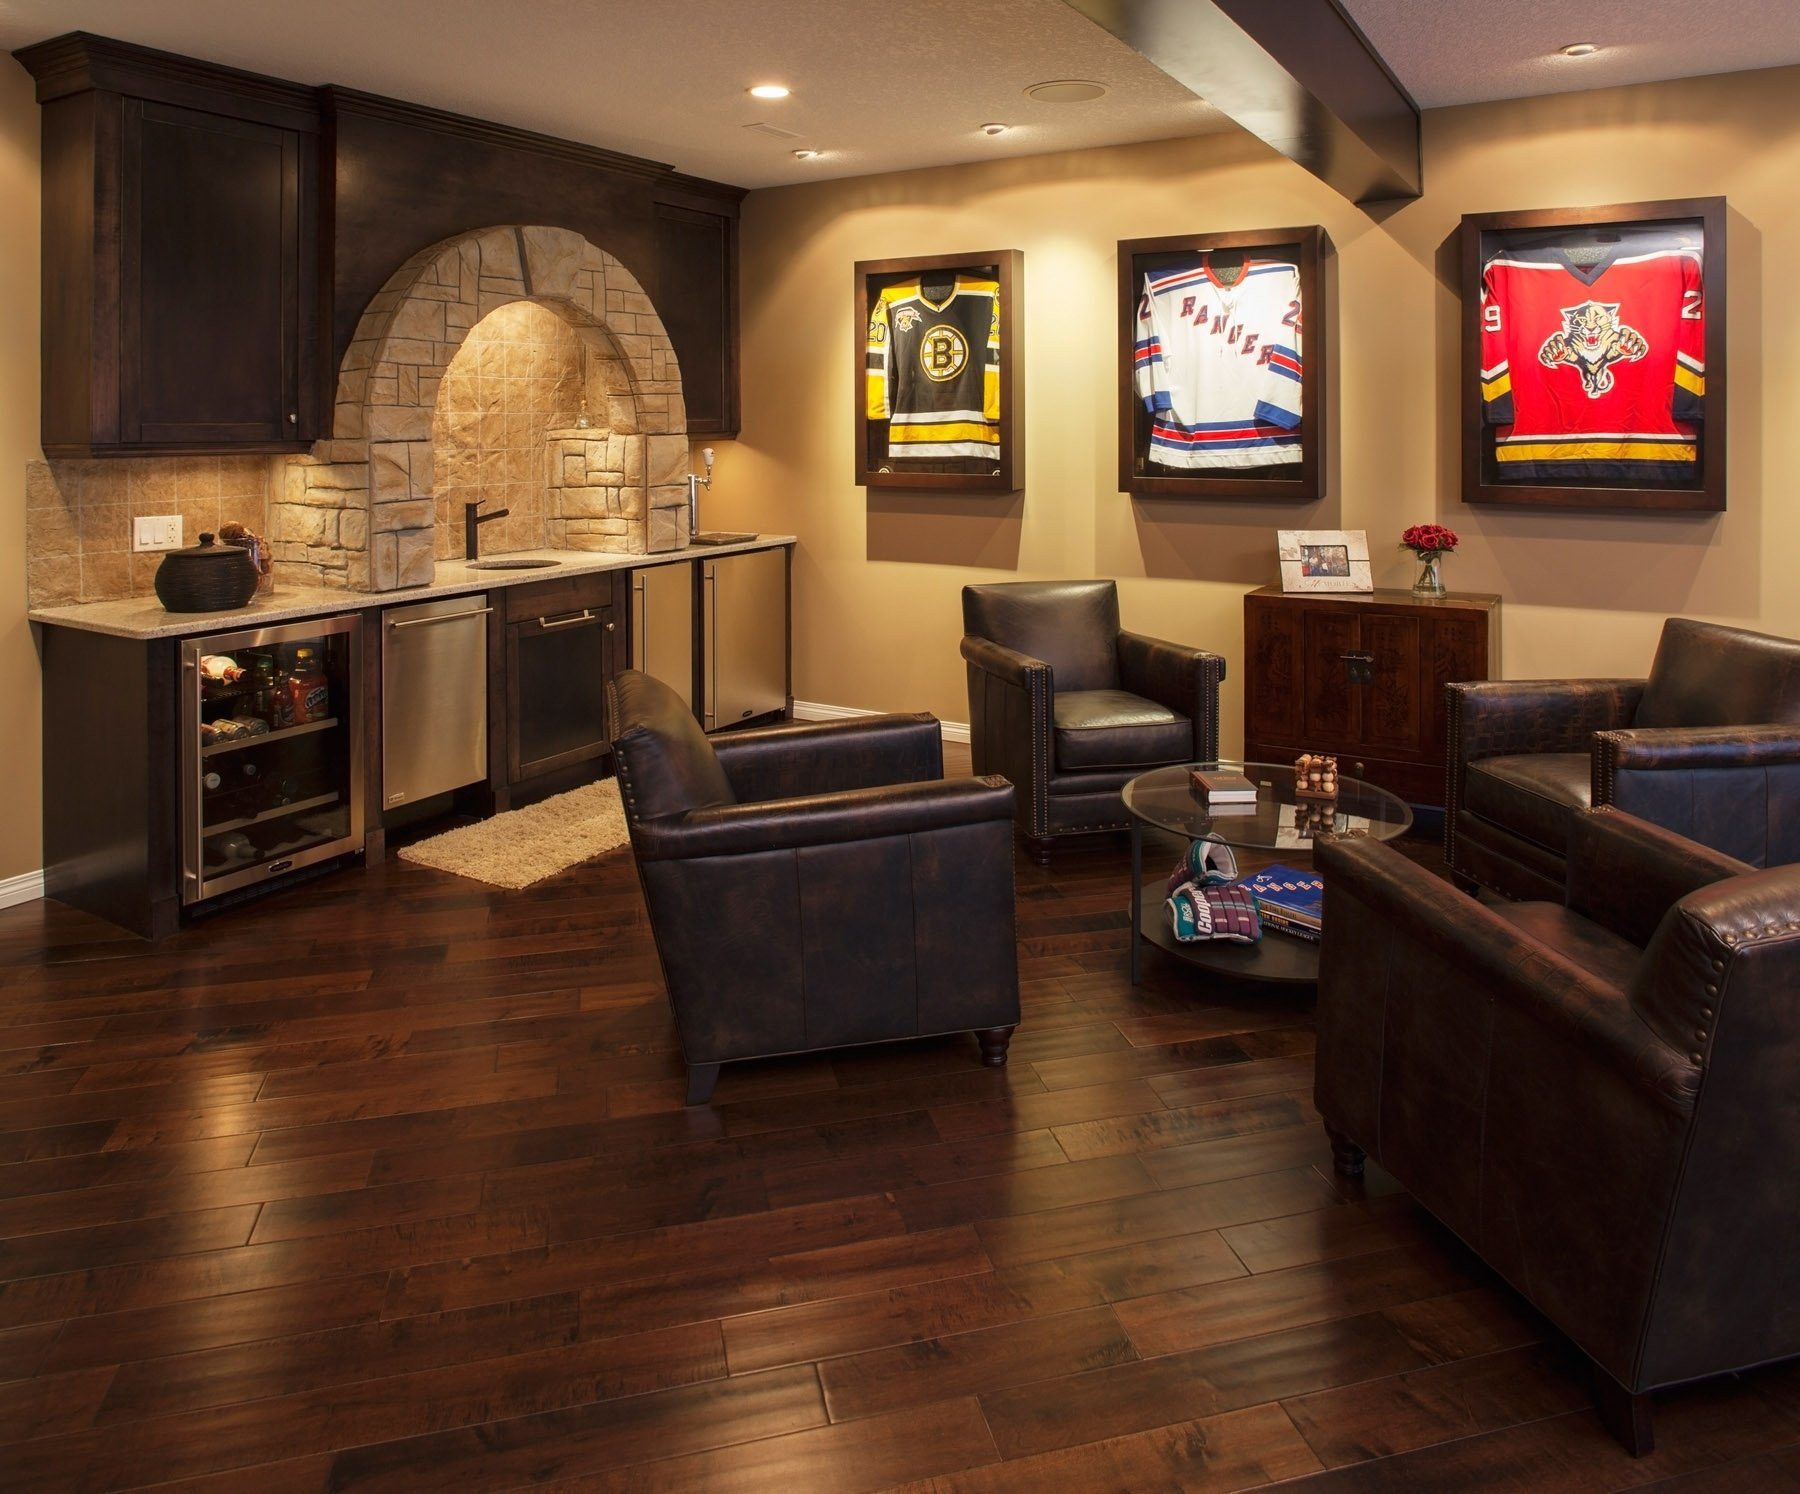 10 Amazing Man Cave Ideas For Basement great collection of man cave ideas for basemen 19289